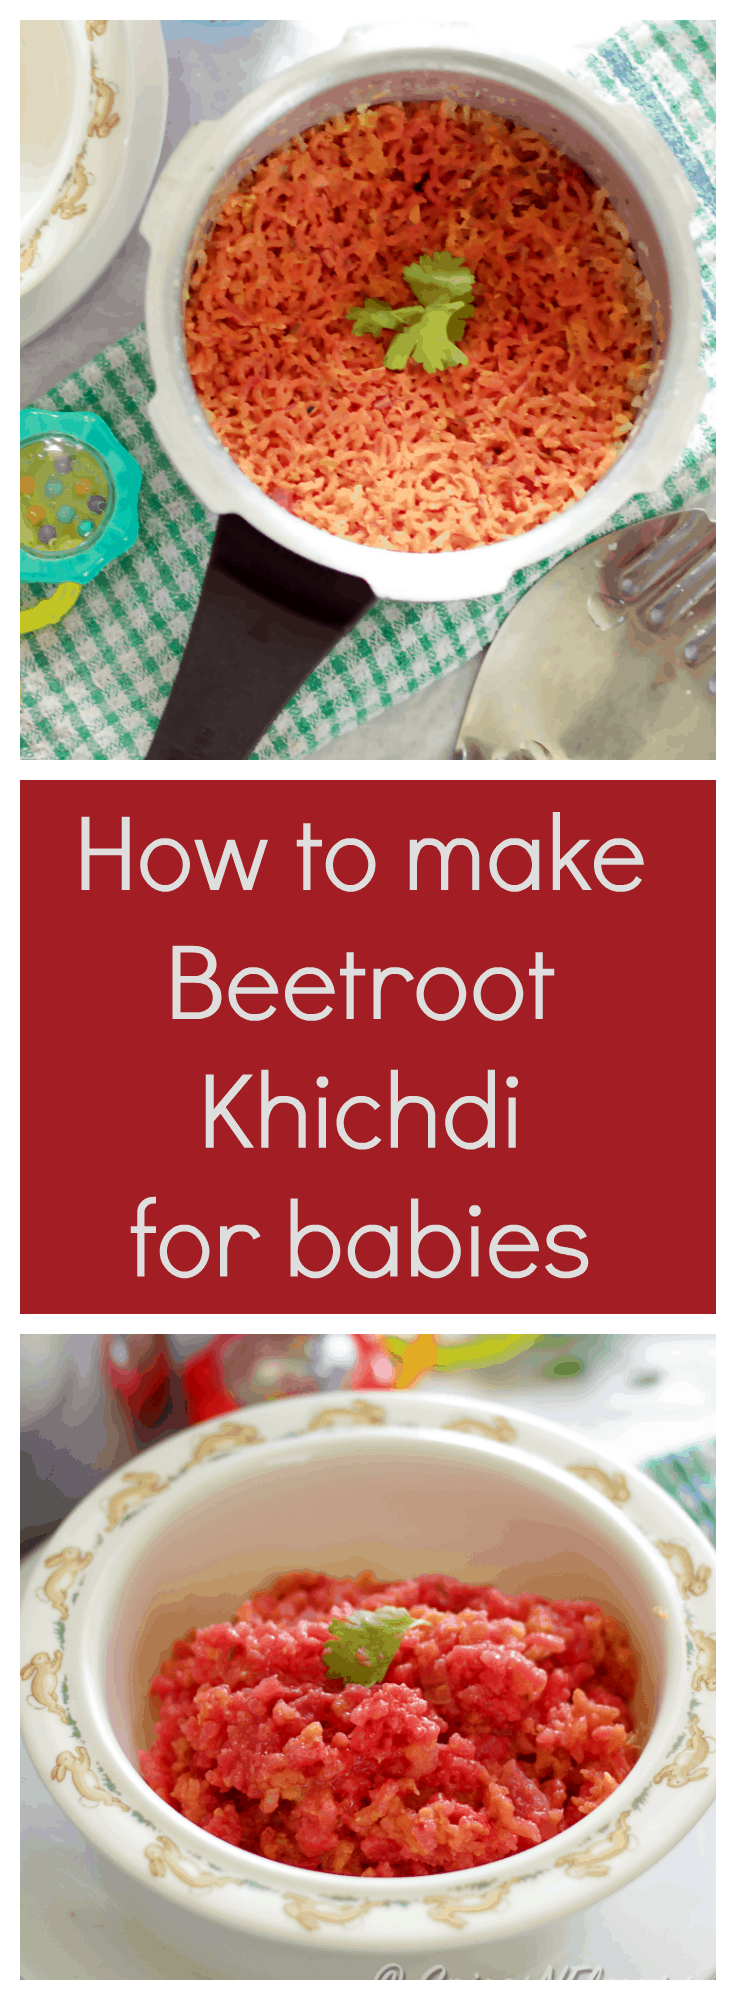 beetroot-khichdi a vegan gluten-free delicious recipe for babies from 8 months onwards baby food